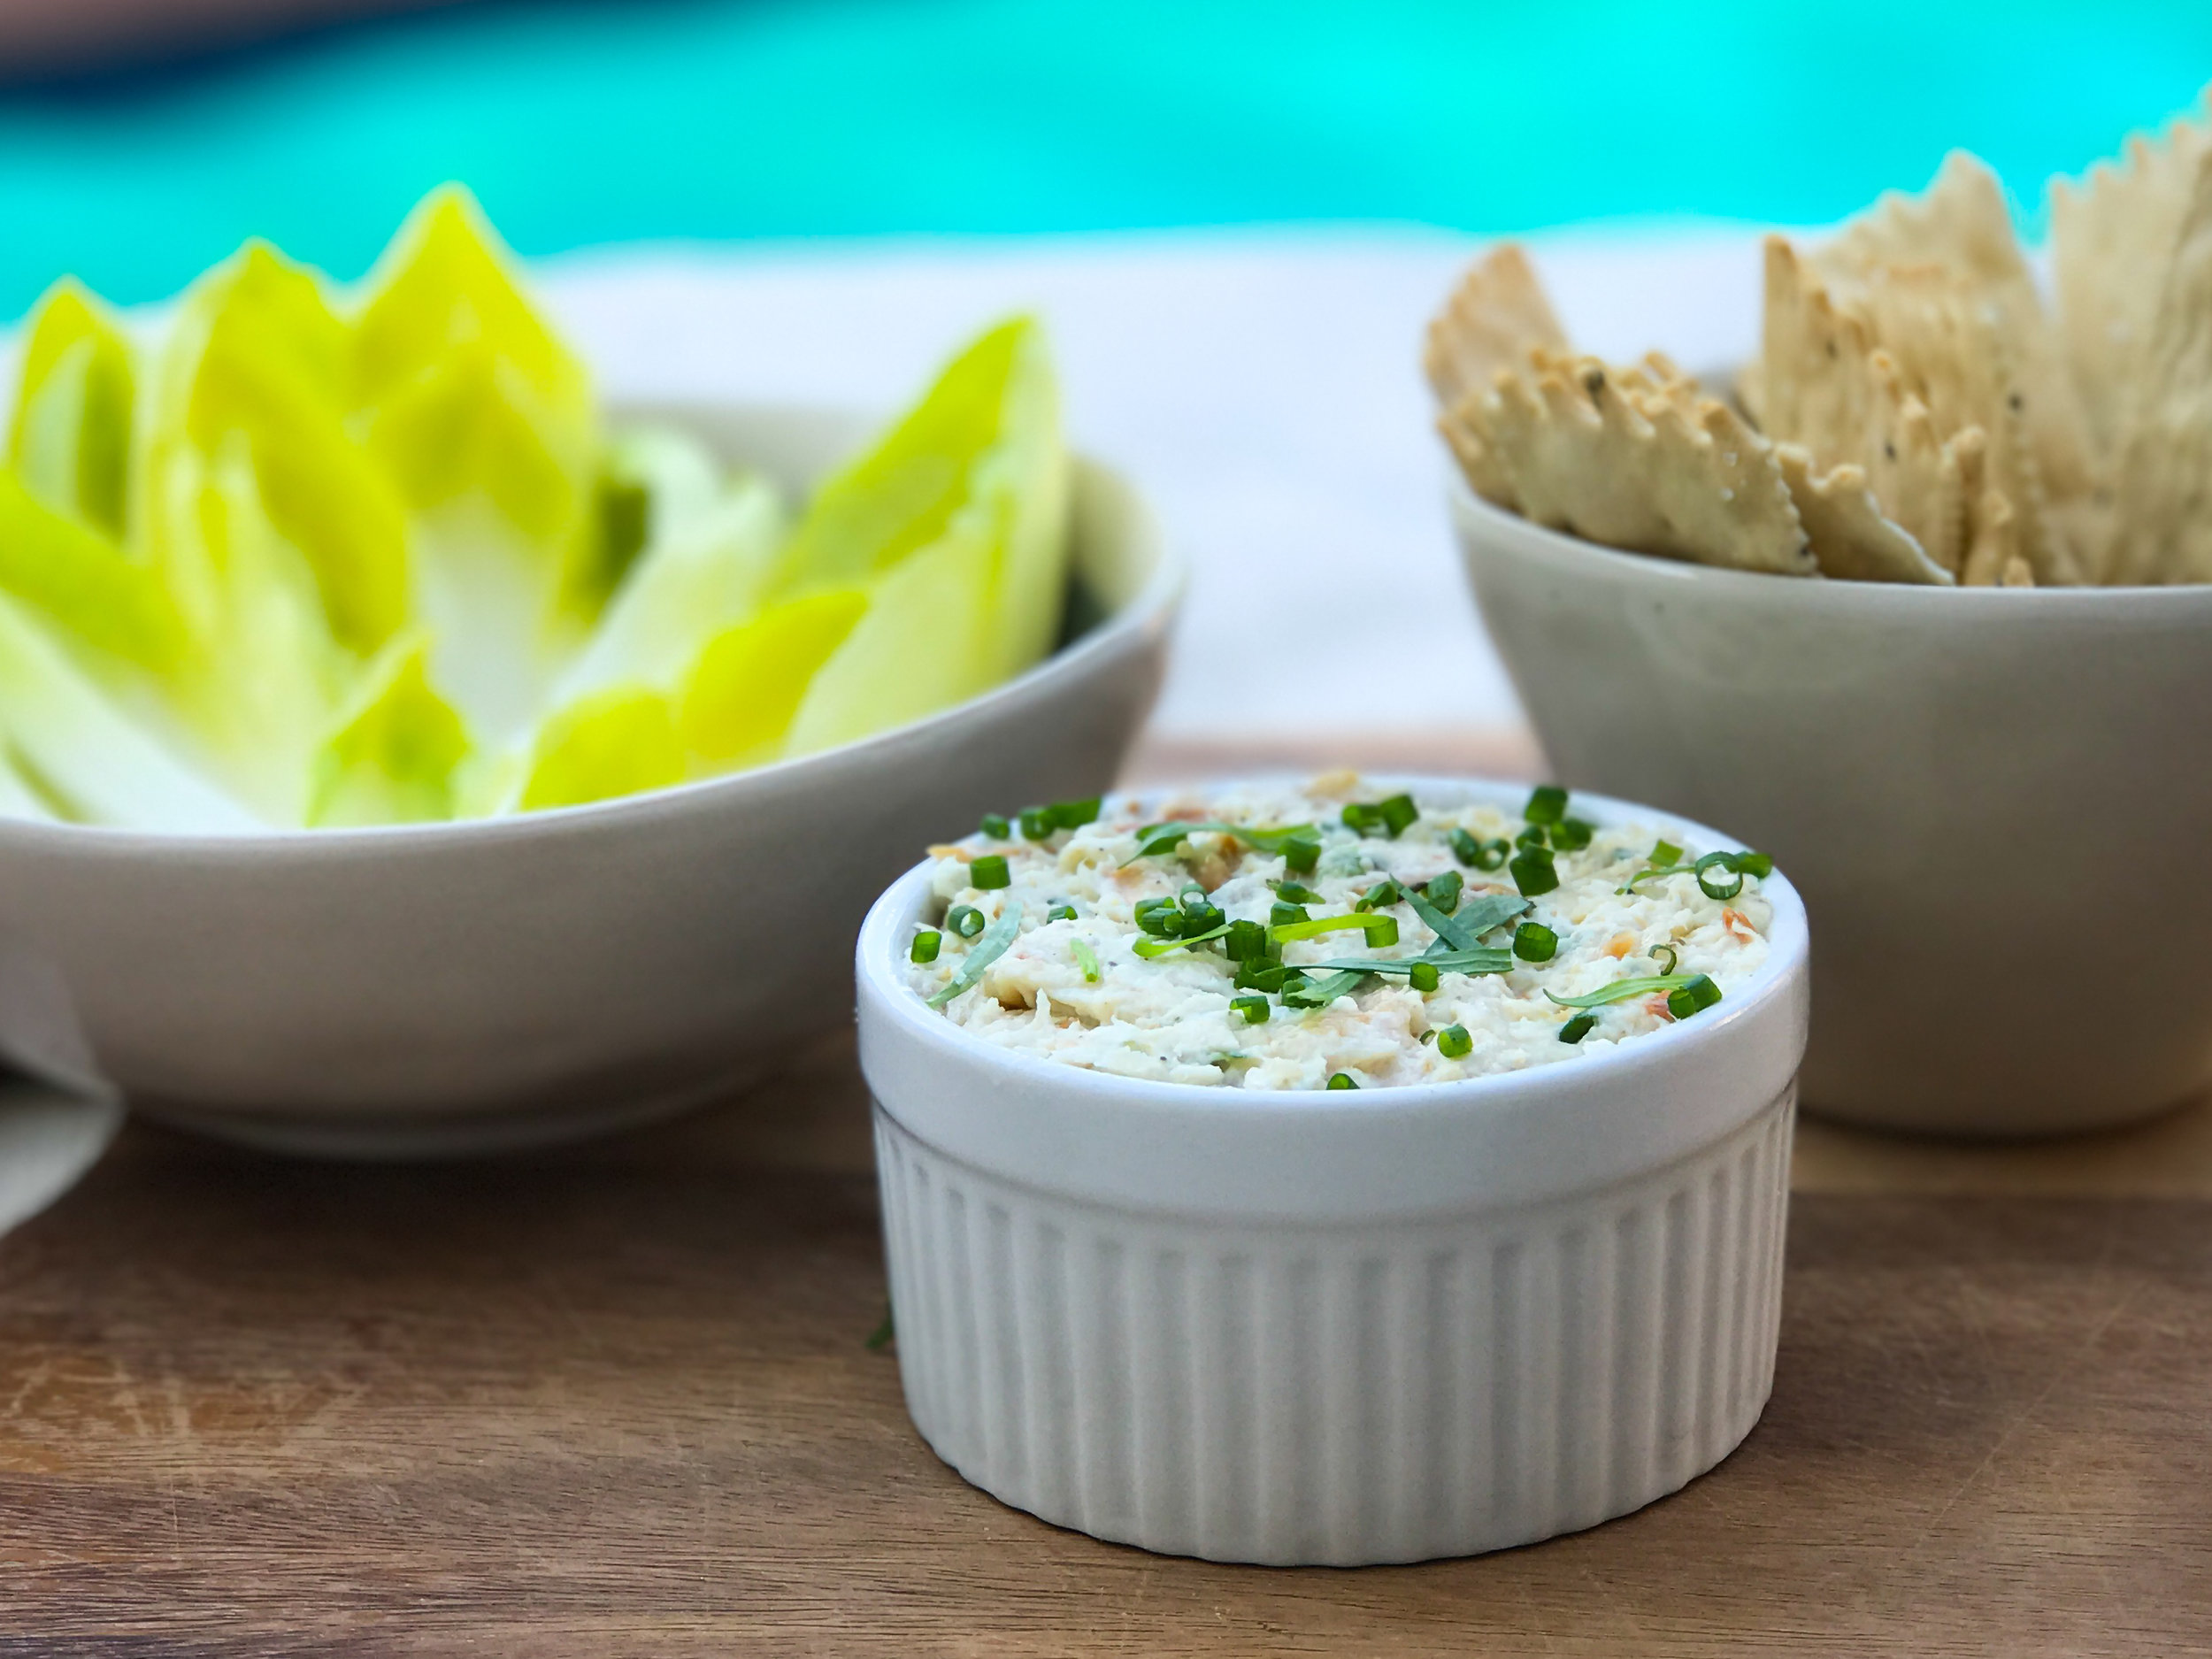 This year's Bastille Day feast starts with make-ahead smoked trout pâté, served with crackers and endive leaves.